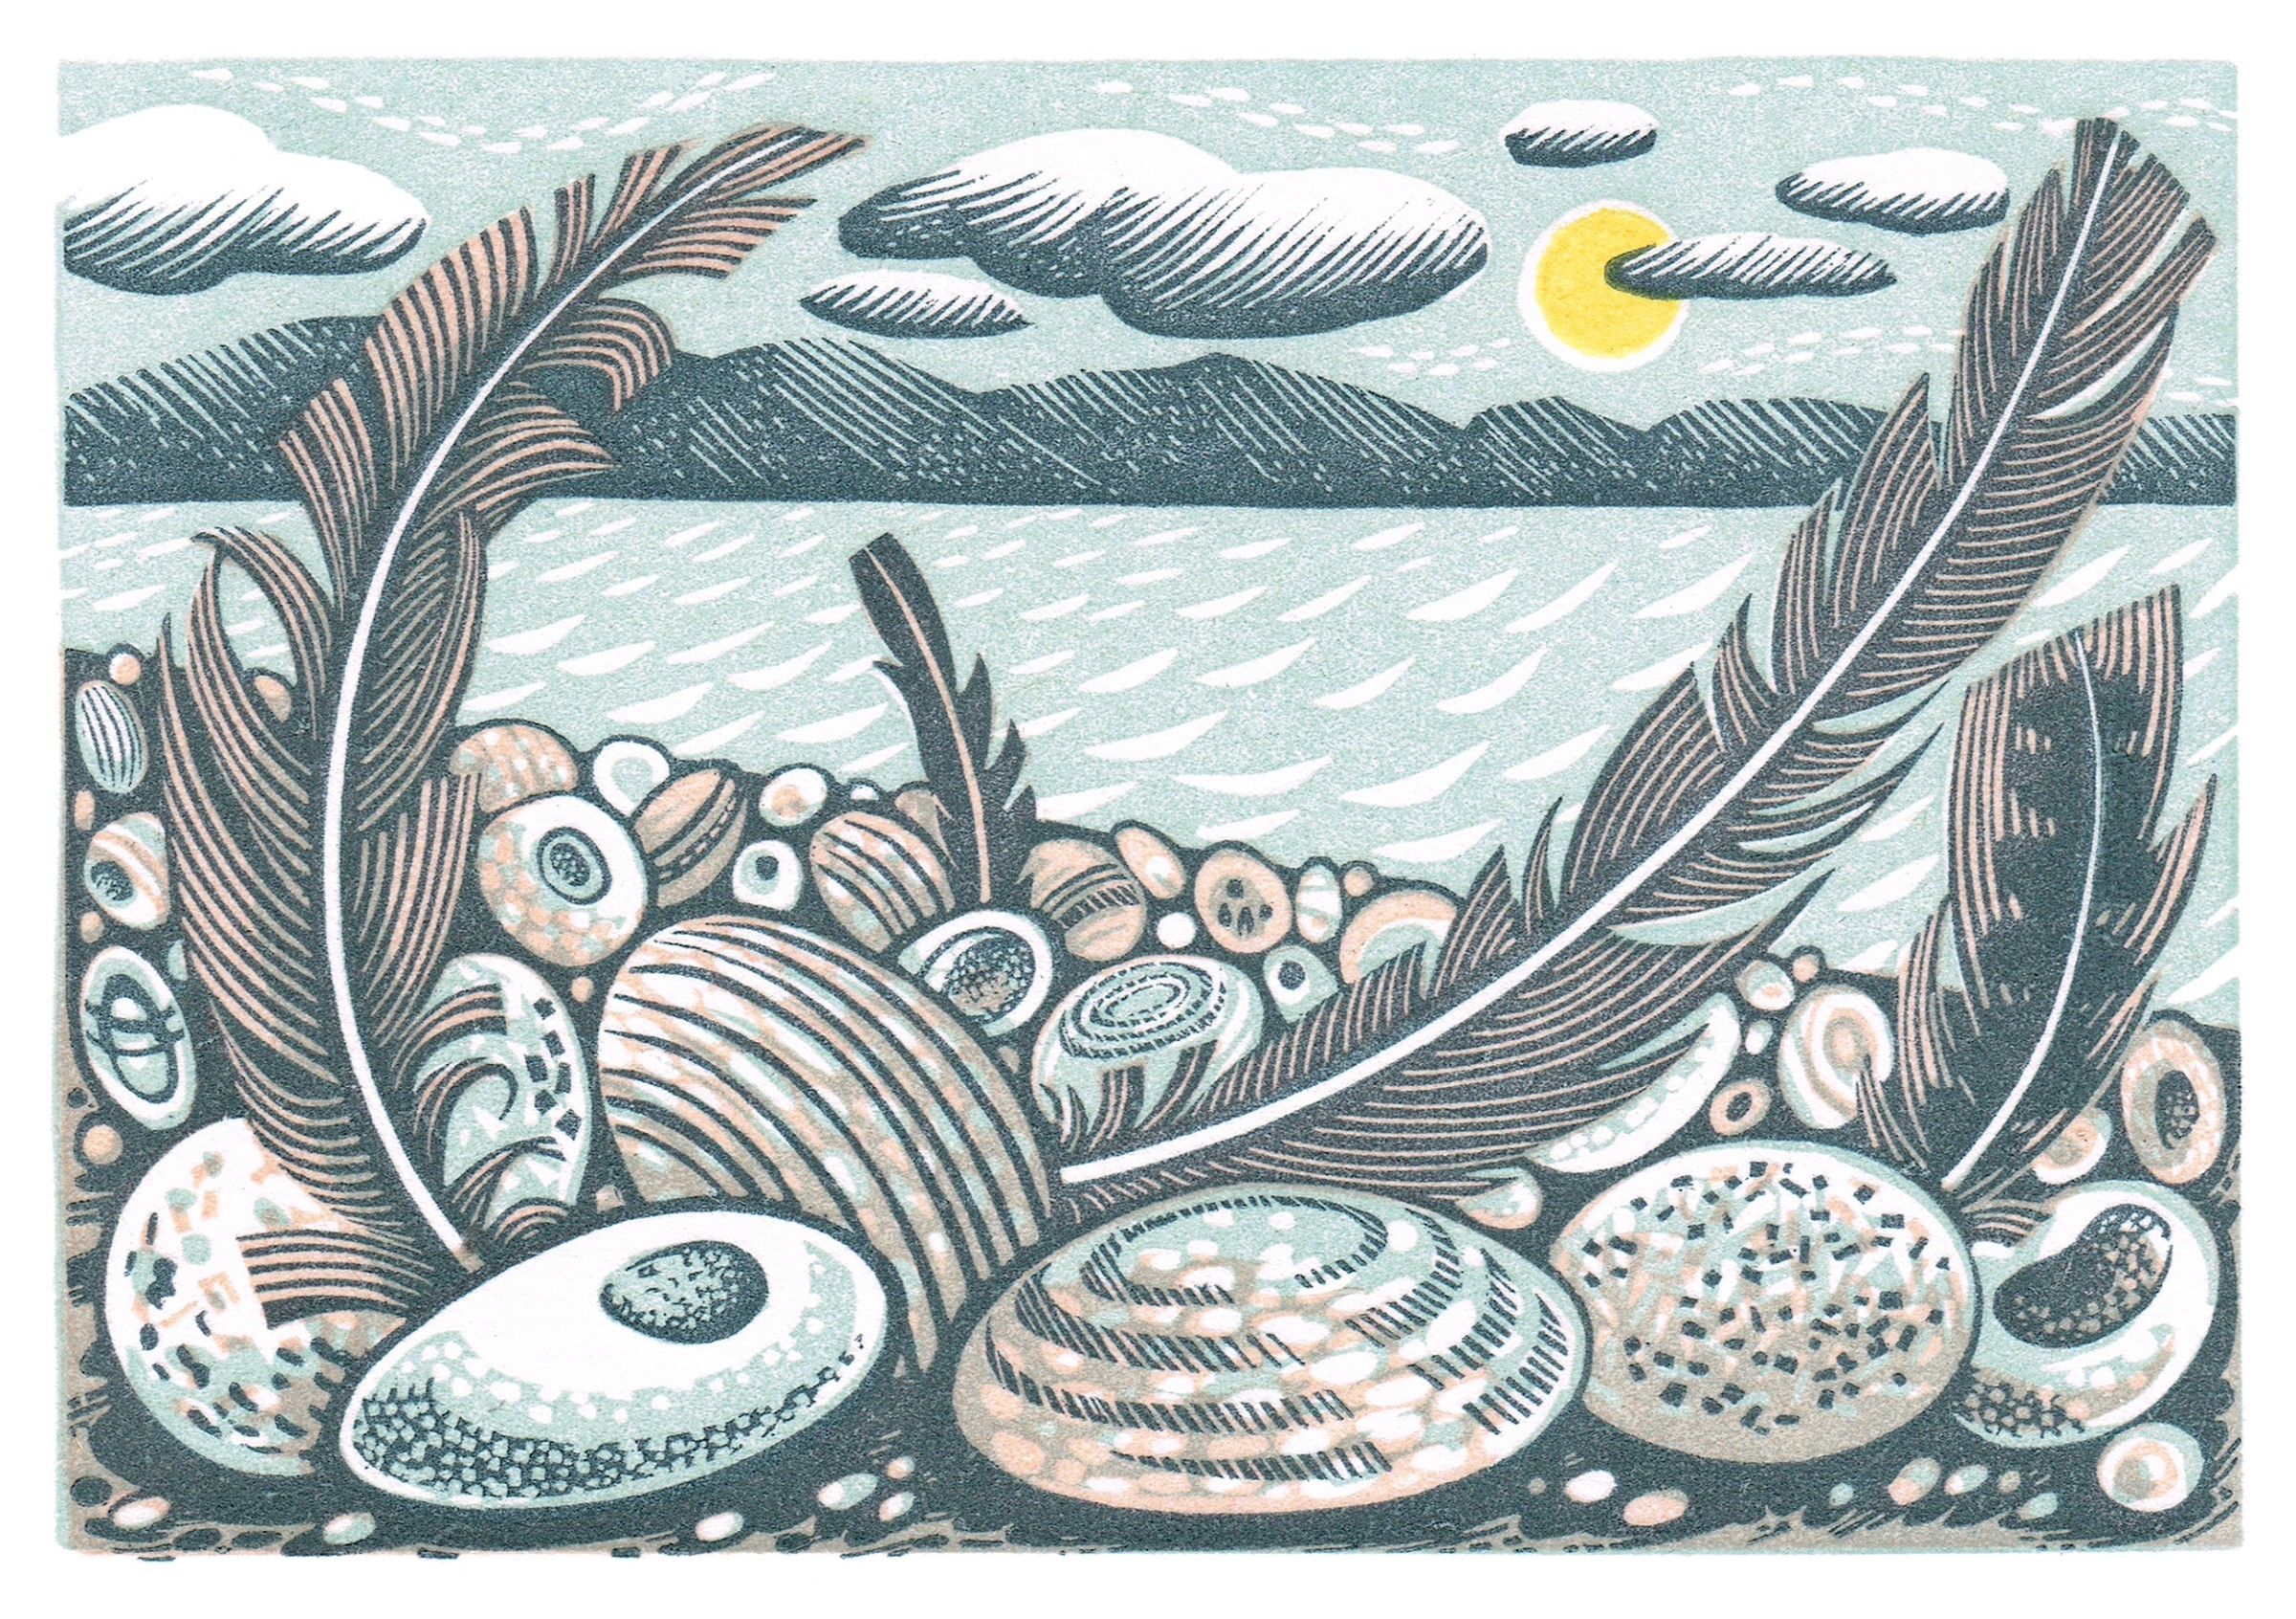 "<span class=""link fancybox-details-link""><a href=""/exhibitions/18/works/image_standalone1085/"">View Detail Page</a></span><p>Angie Lewin RWS RE</p><p>Tideline Feathers</p><p>wood engraving and linocut</p><p>27 x 30cm</p><p>£245 framed</p><p>£185 unframed</p>"